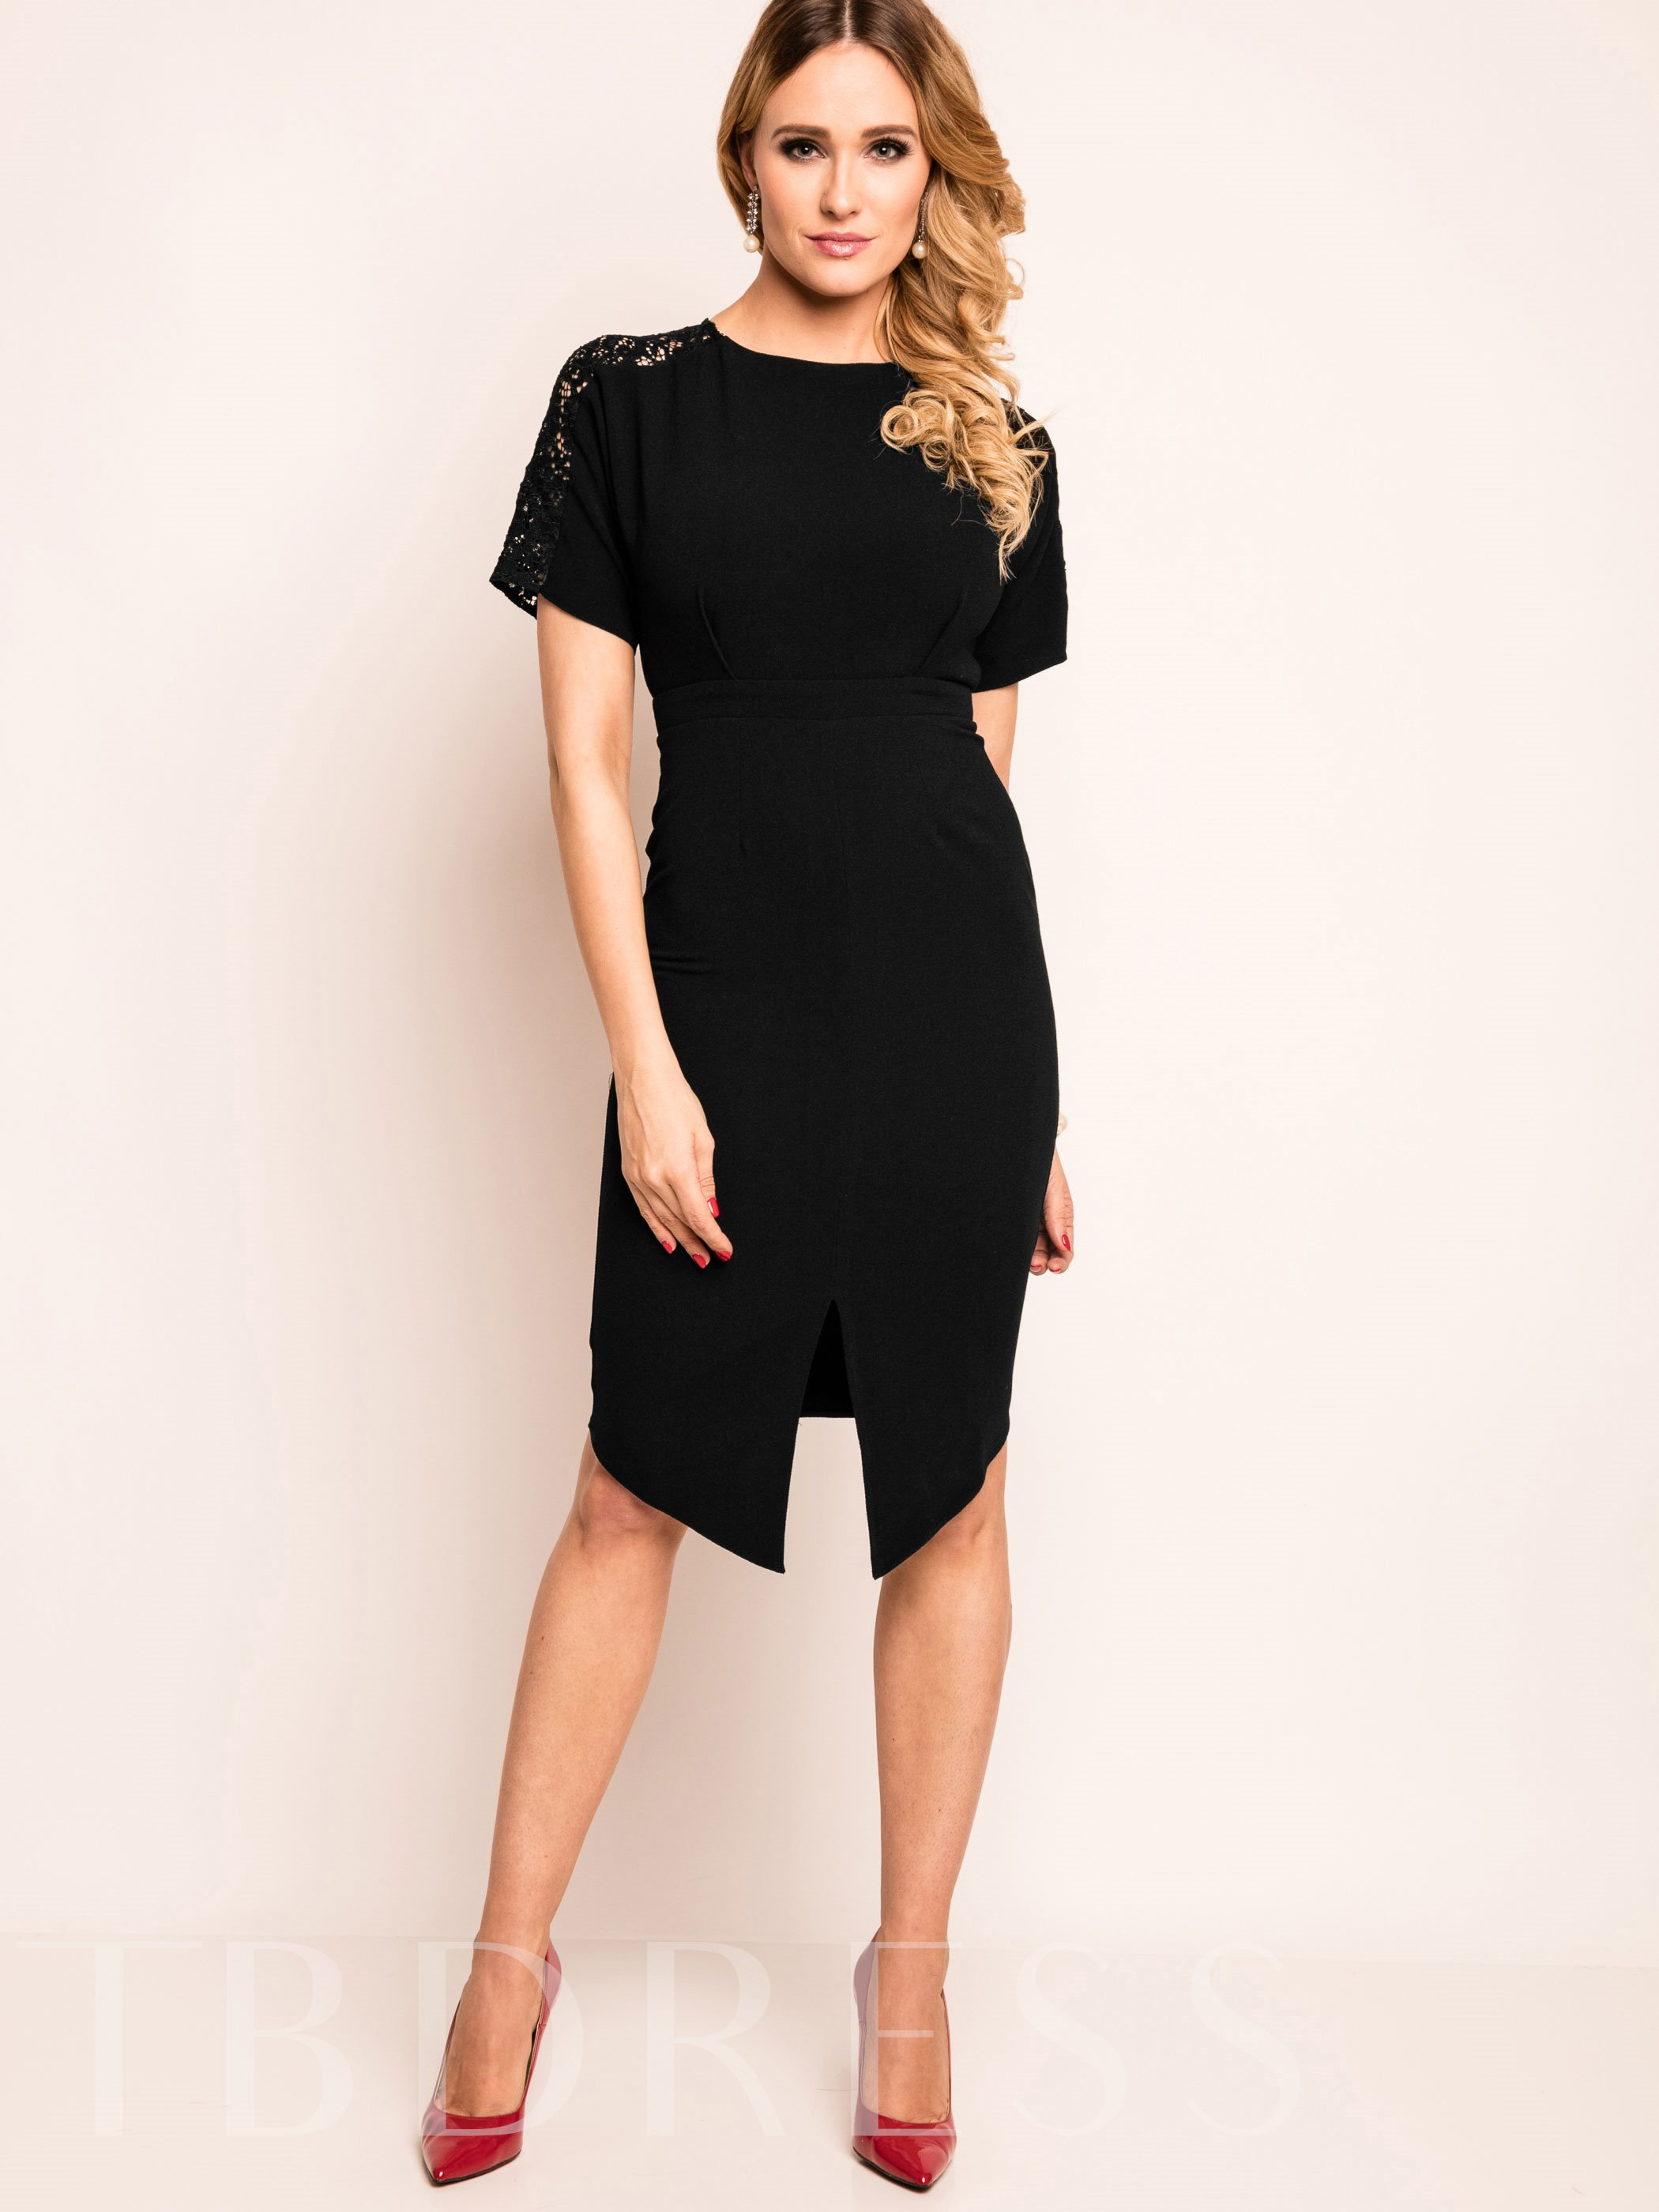 Buy Asymmetric Plain Short Sleeve Women's Bodycon Dress, Summer,Fall, 12748118 for $21.99 in TBDress store